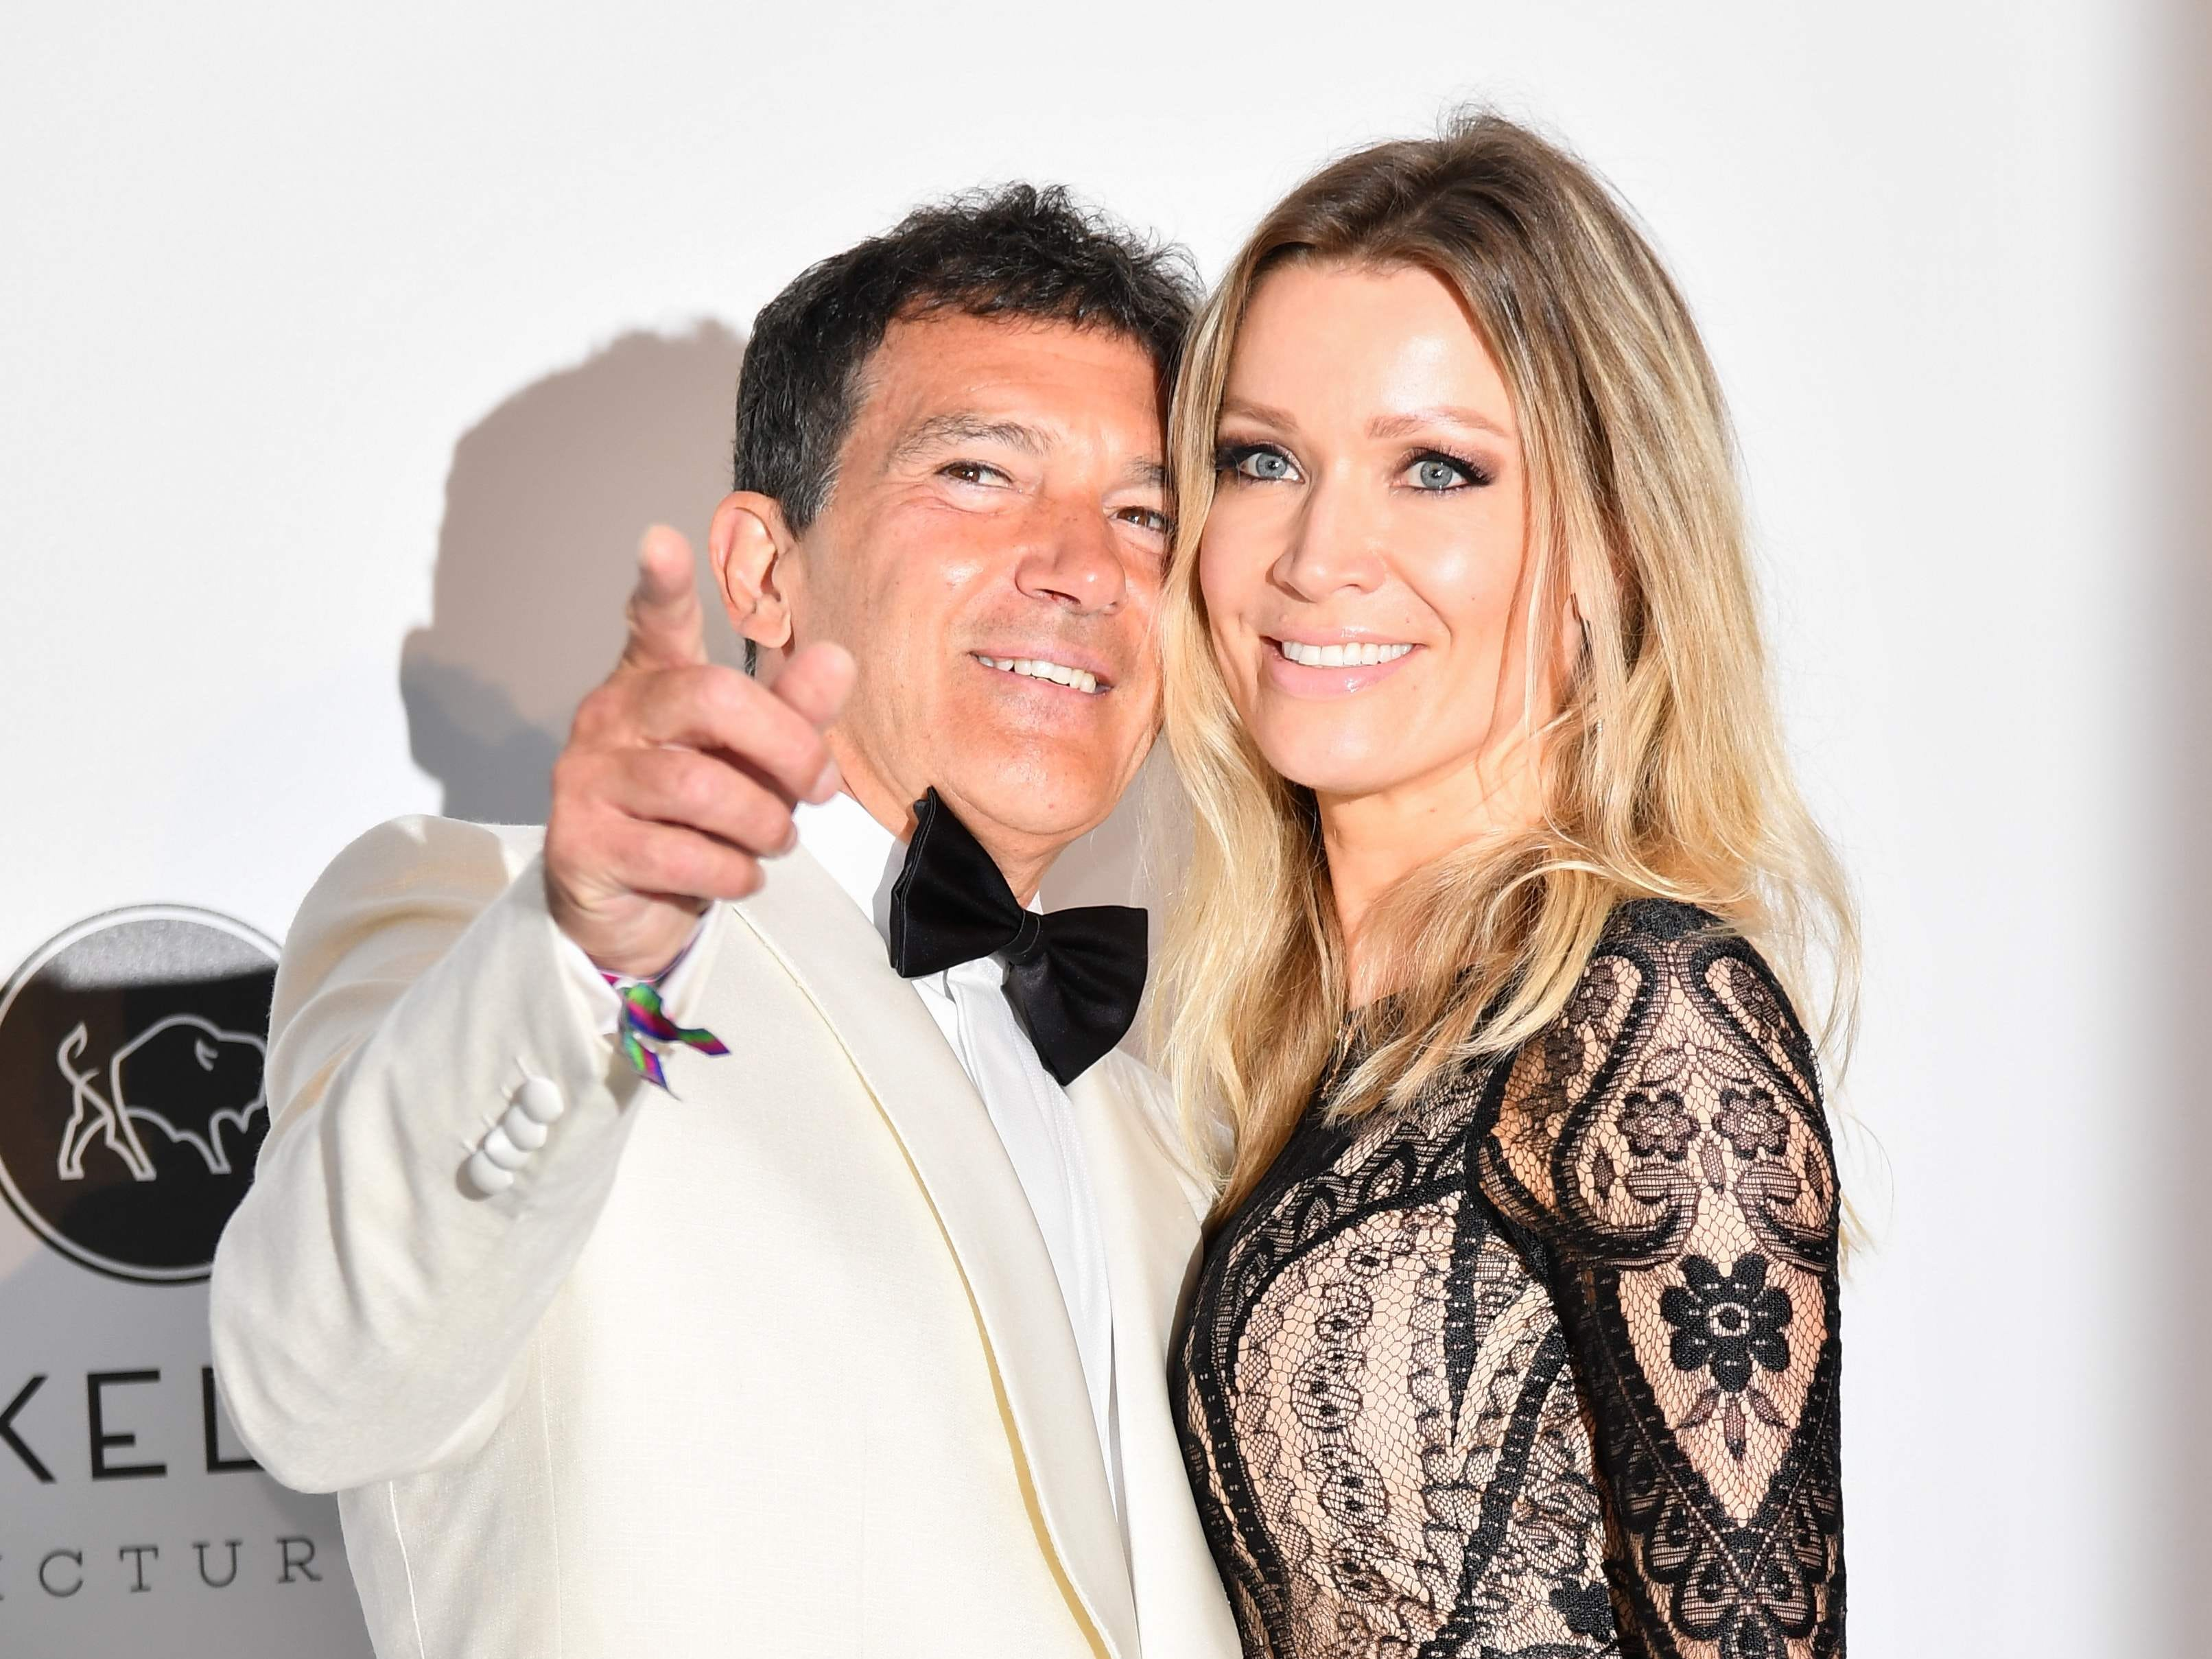 Spanish actor Antonio Banderas and his partner Nicole Kimpel pose as they arrive on May 23, 2019 for the amfAR 26th Annual Cinema Against AIDS gala at the Hotel du Cap-Eden-Roc in Cap d'Antibes, southern France, on the sidelines of the 72nd Cannes Film Festival.